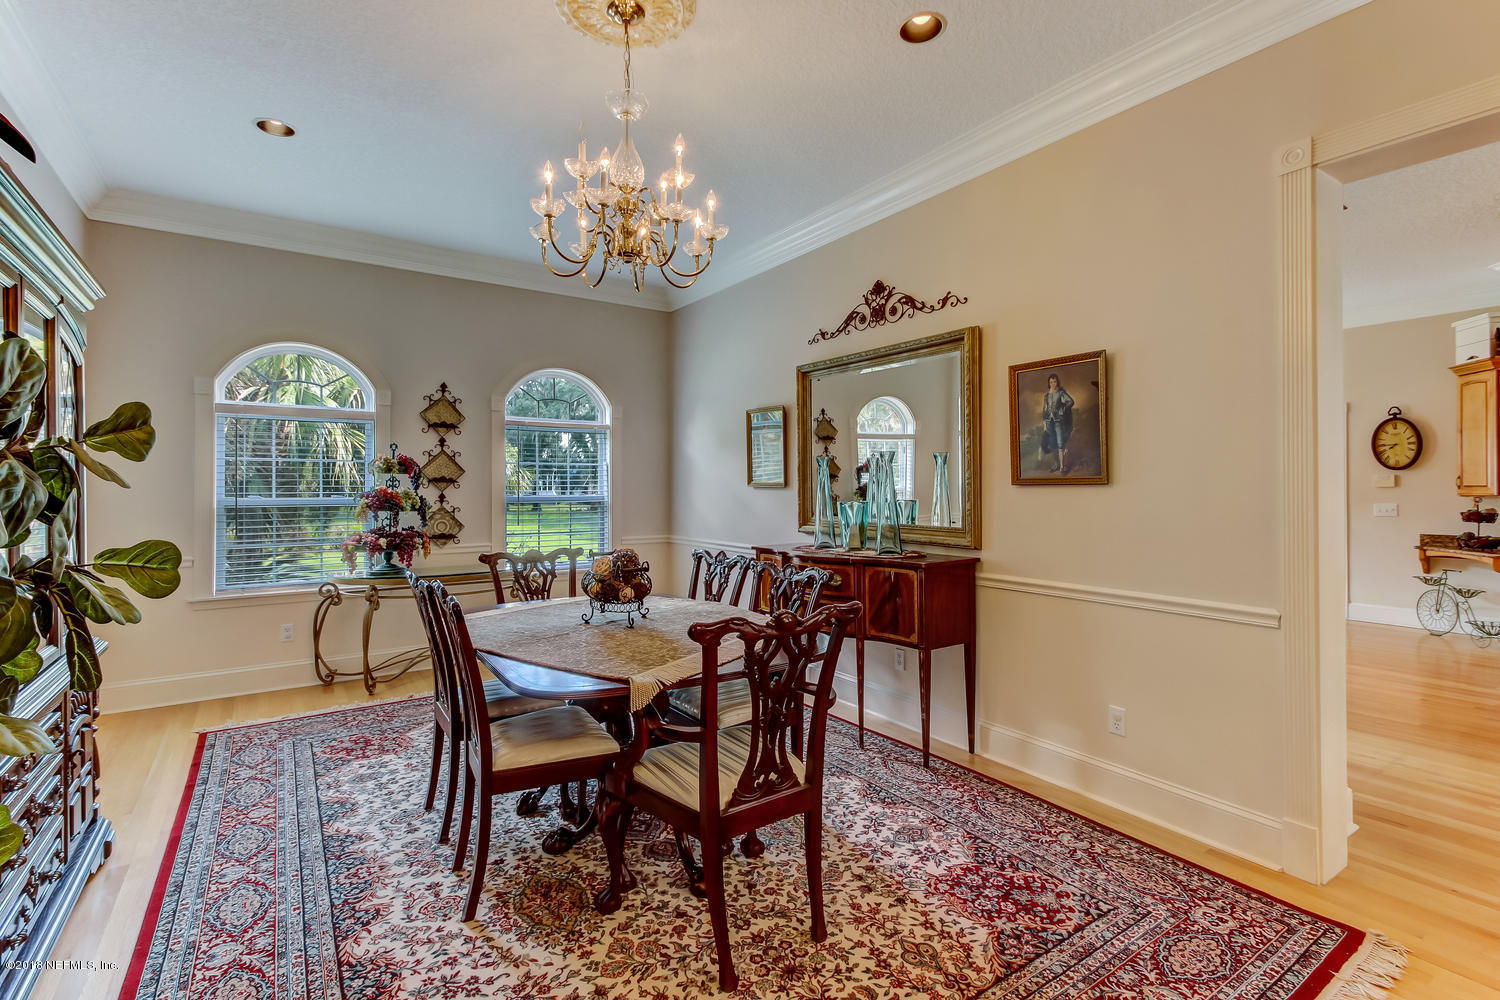 2948 14TH, FERNANDINA BEACH, FLORIDA 32034, 4 Bedrooms Bedrooms, ,3 BathroomsBathrooms,Residential - single family,For sale,14TH,947471